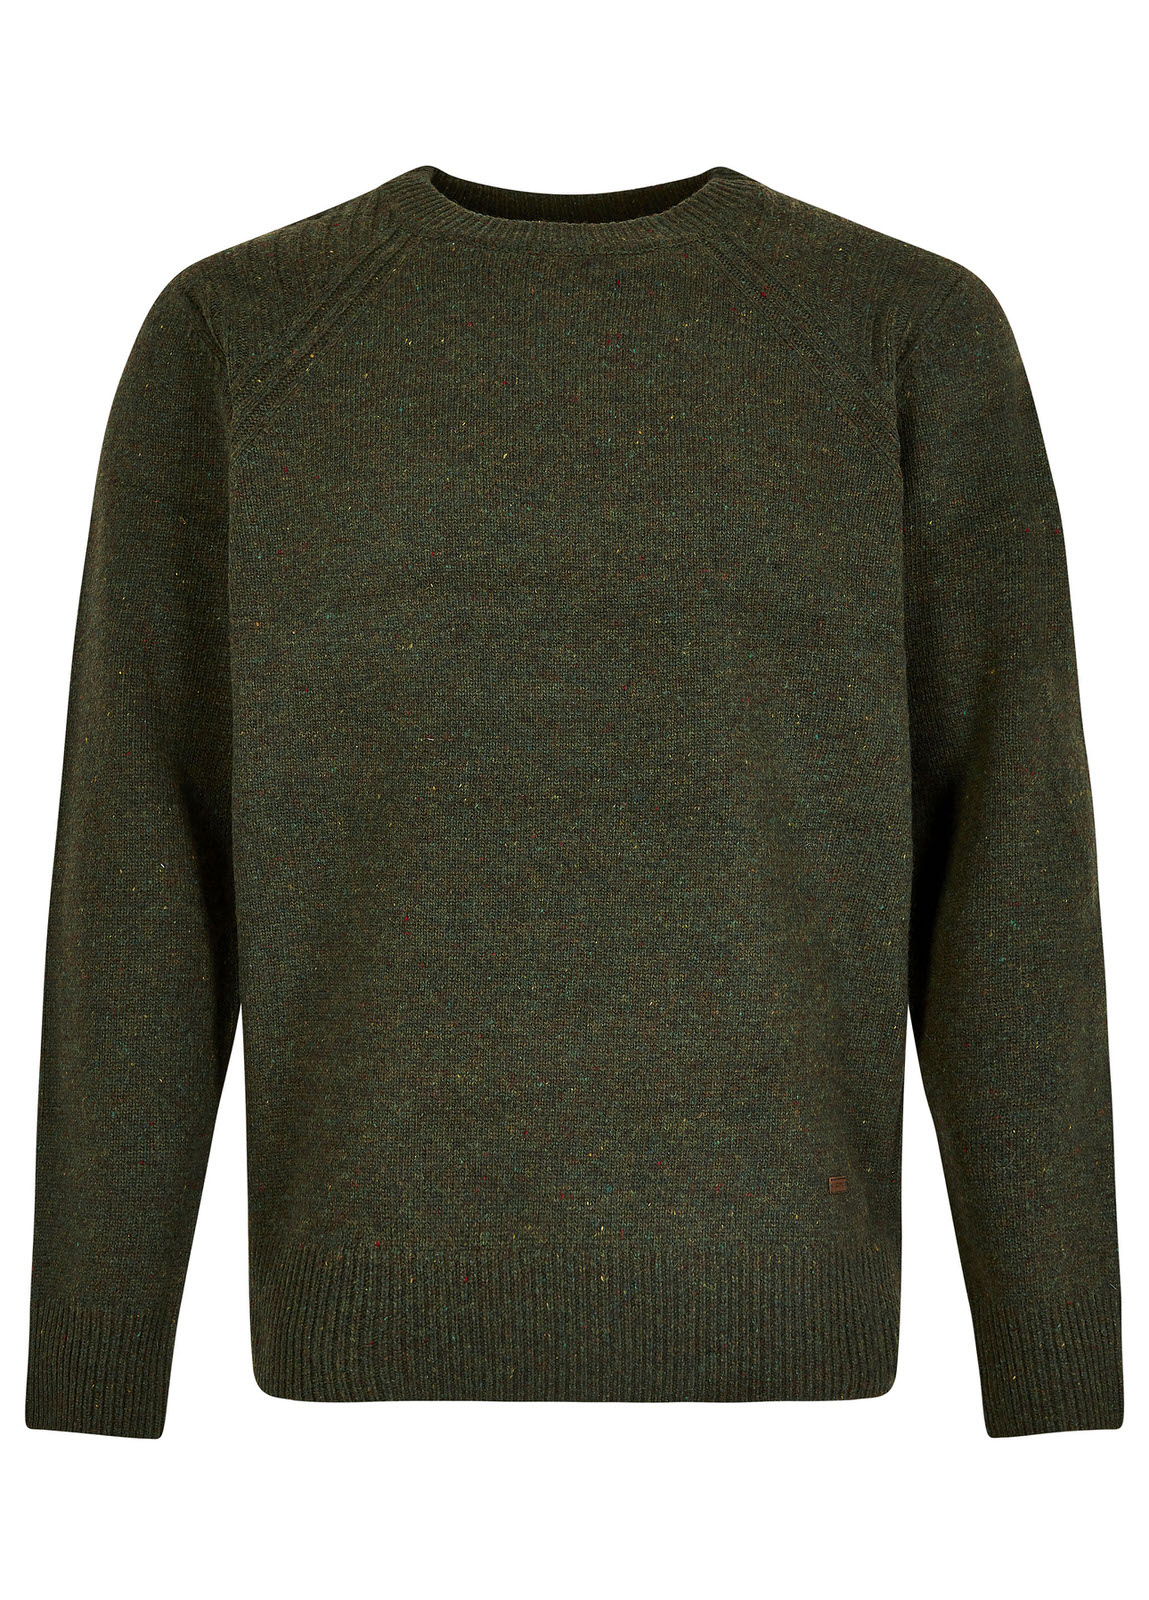 Kenny_Sweater_Olive_Image_1